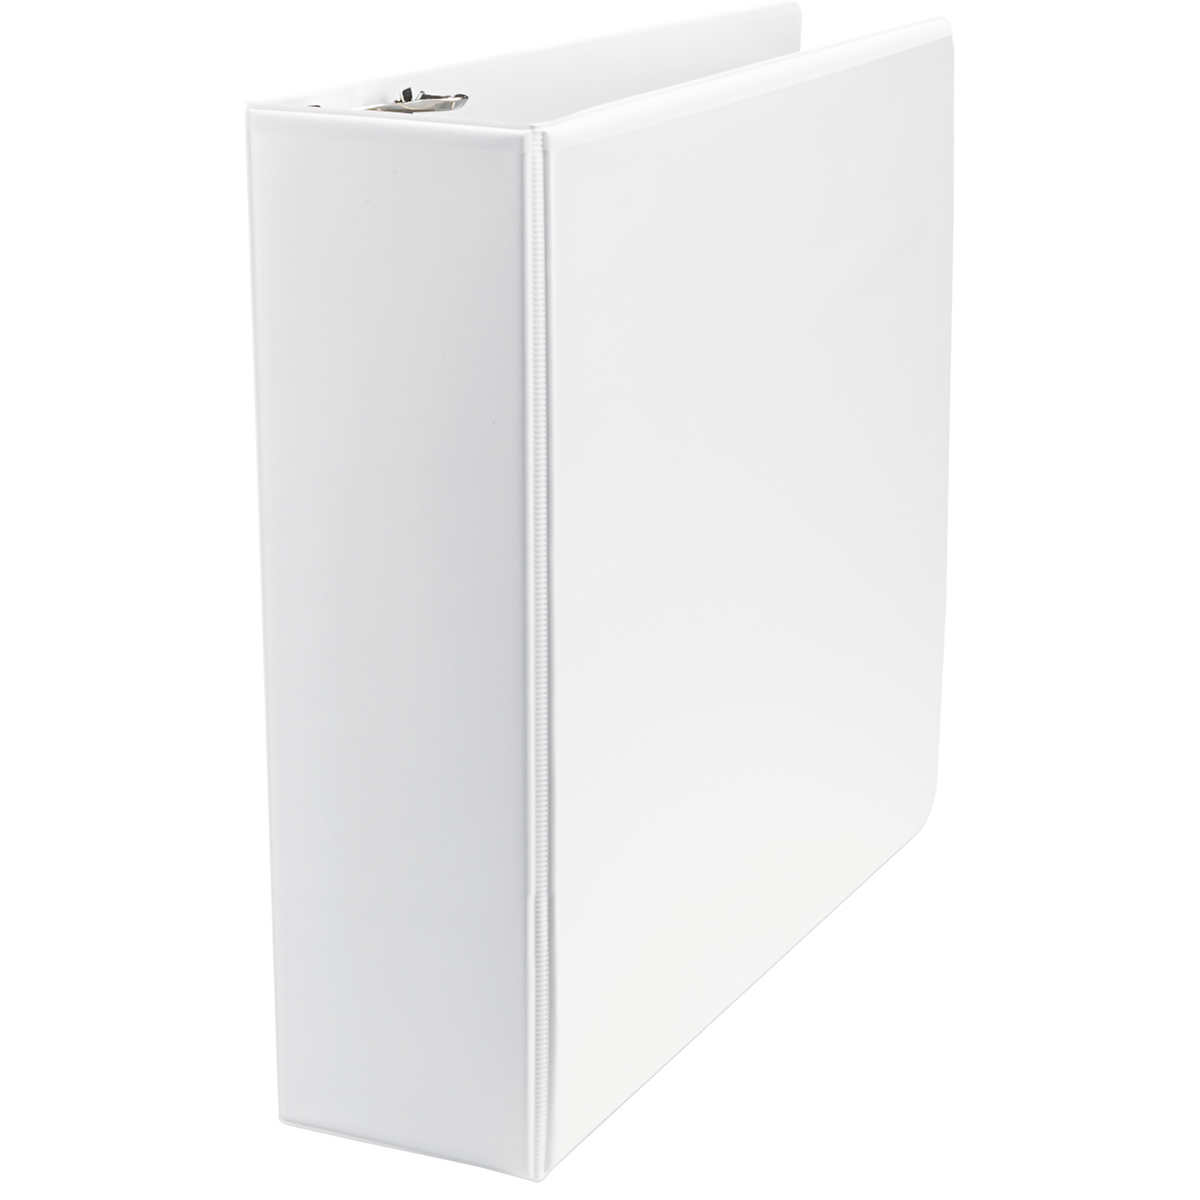 office impressions view binder d ring 3 inch white